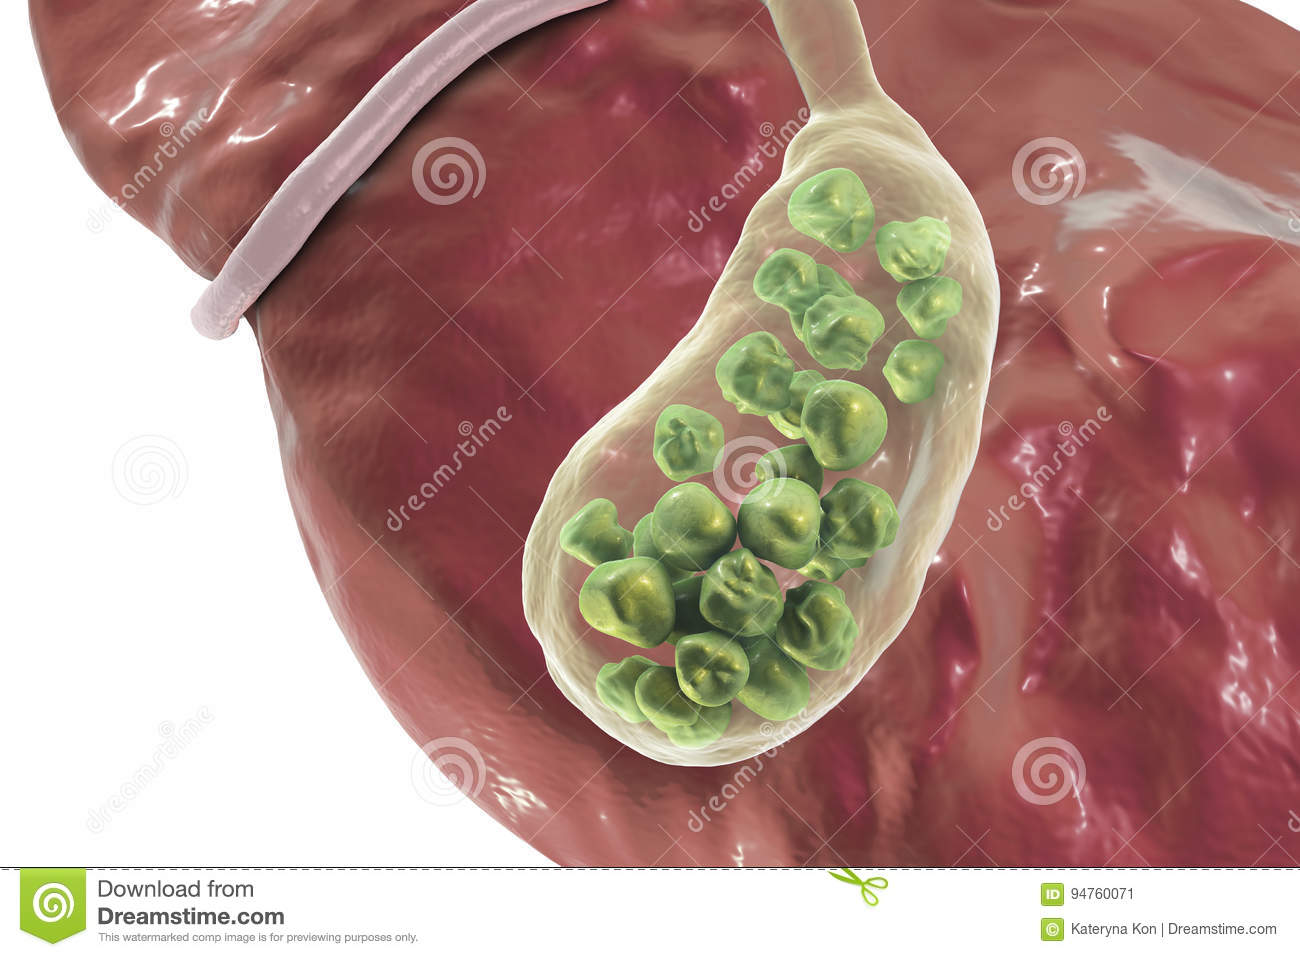 Gallstones Illustration Showing Bottom View Of Liver And